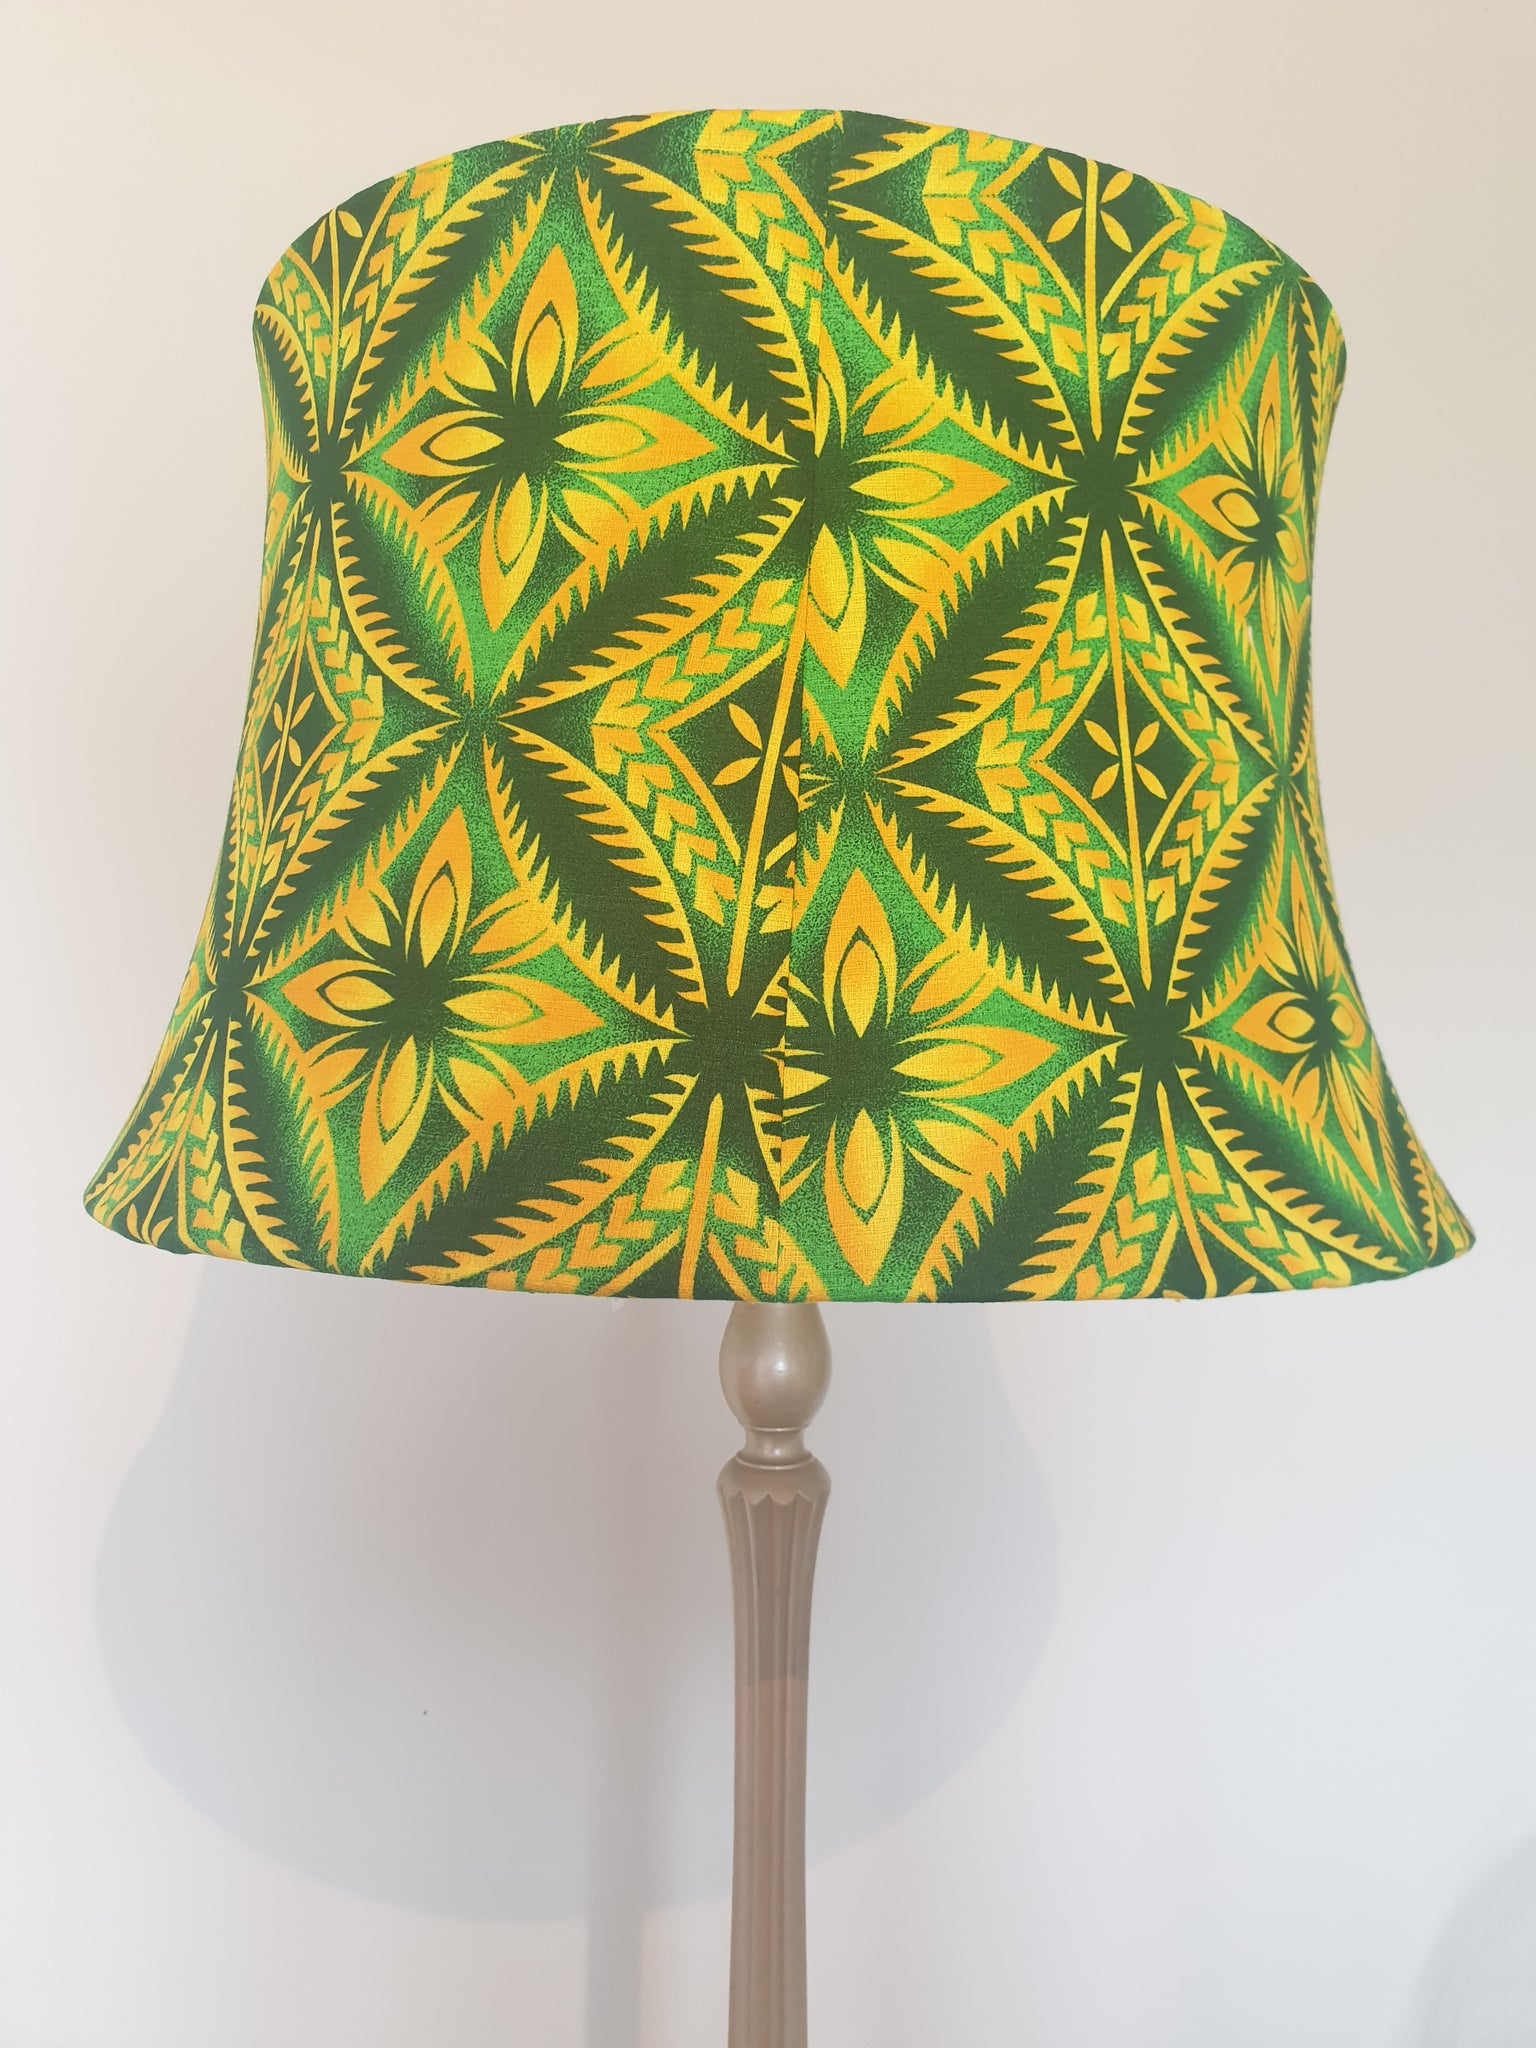 Standard Lamp Stand with Shade